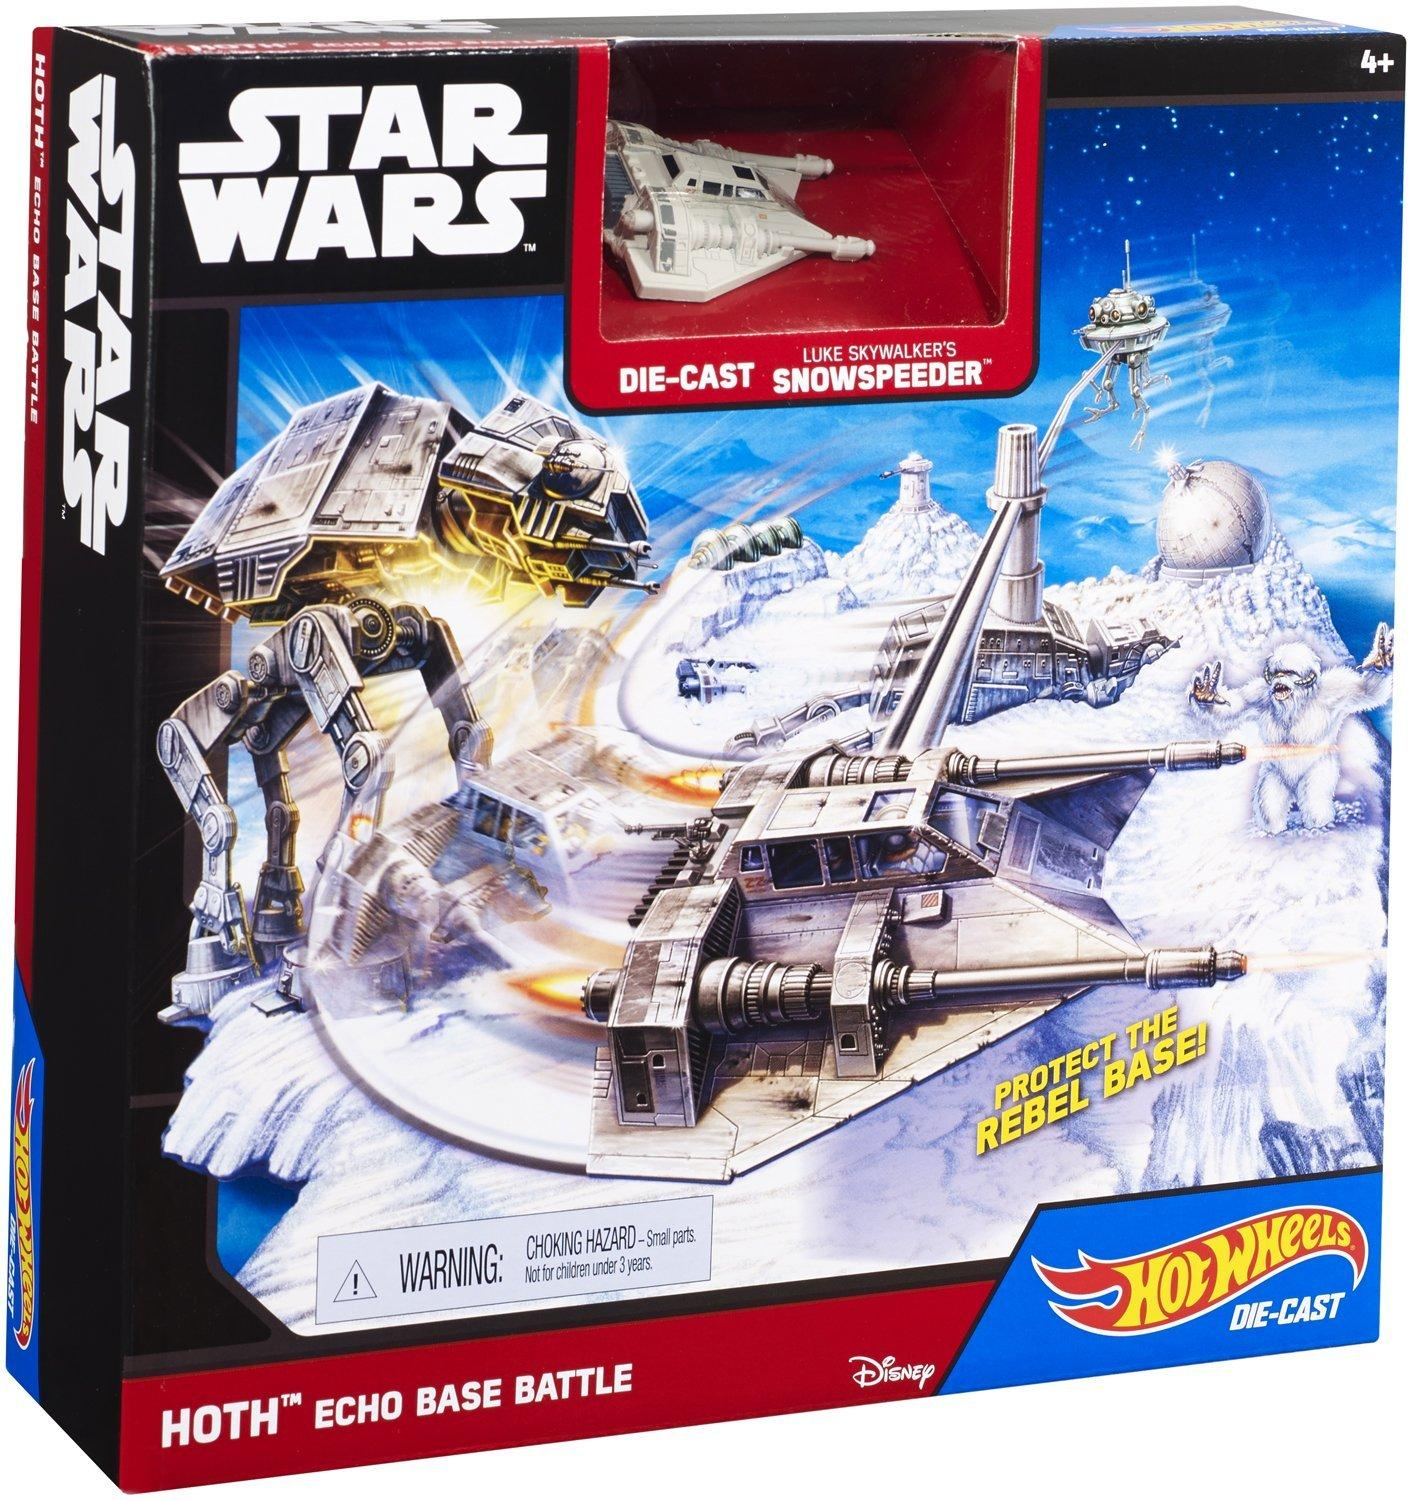 STAR WARS NAVICELLE SPAZIALI PLAYSET CGN33 MATTEL TOYS